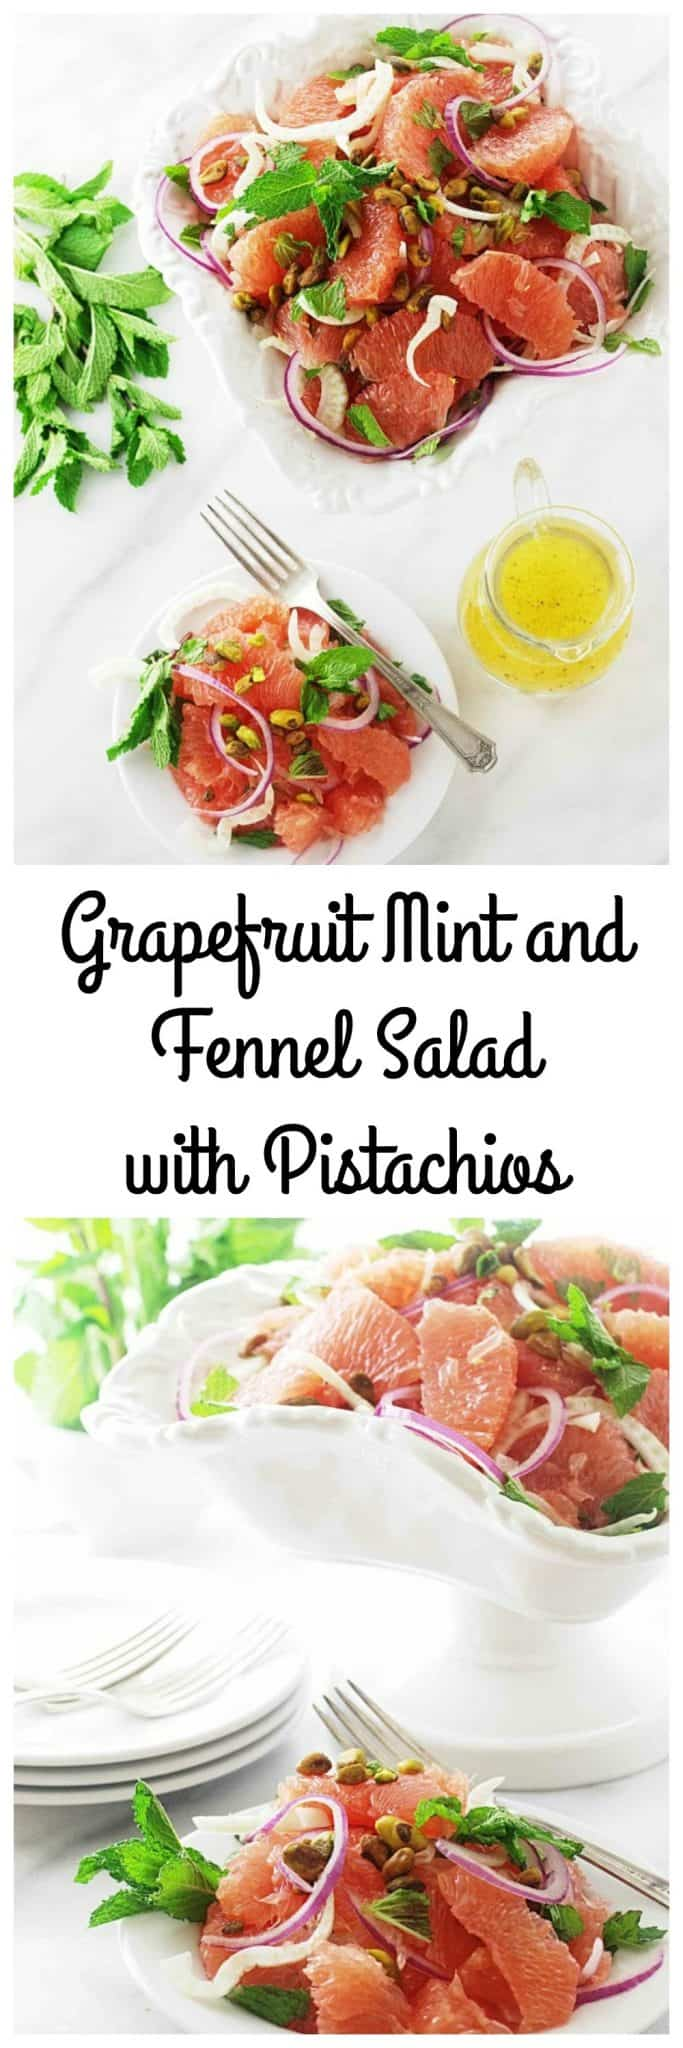 Grapefruit, Mint and Fennel Salad with Pistachios - Savor the Best